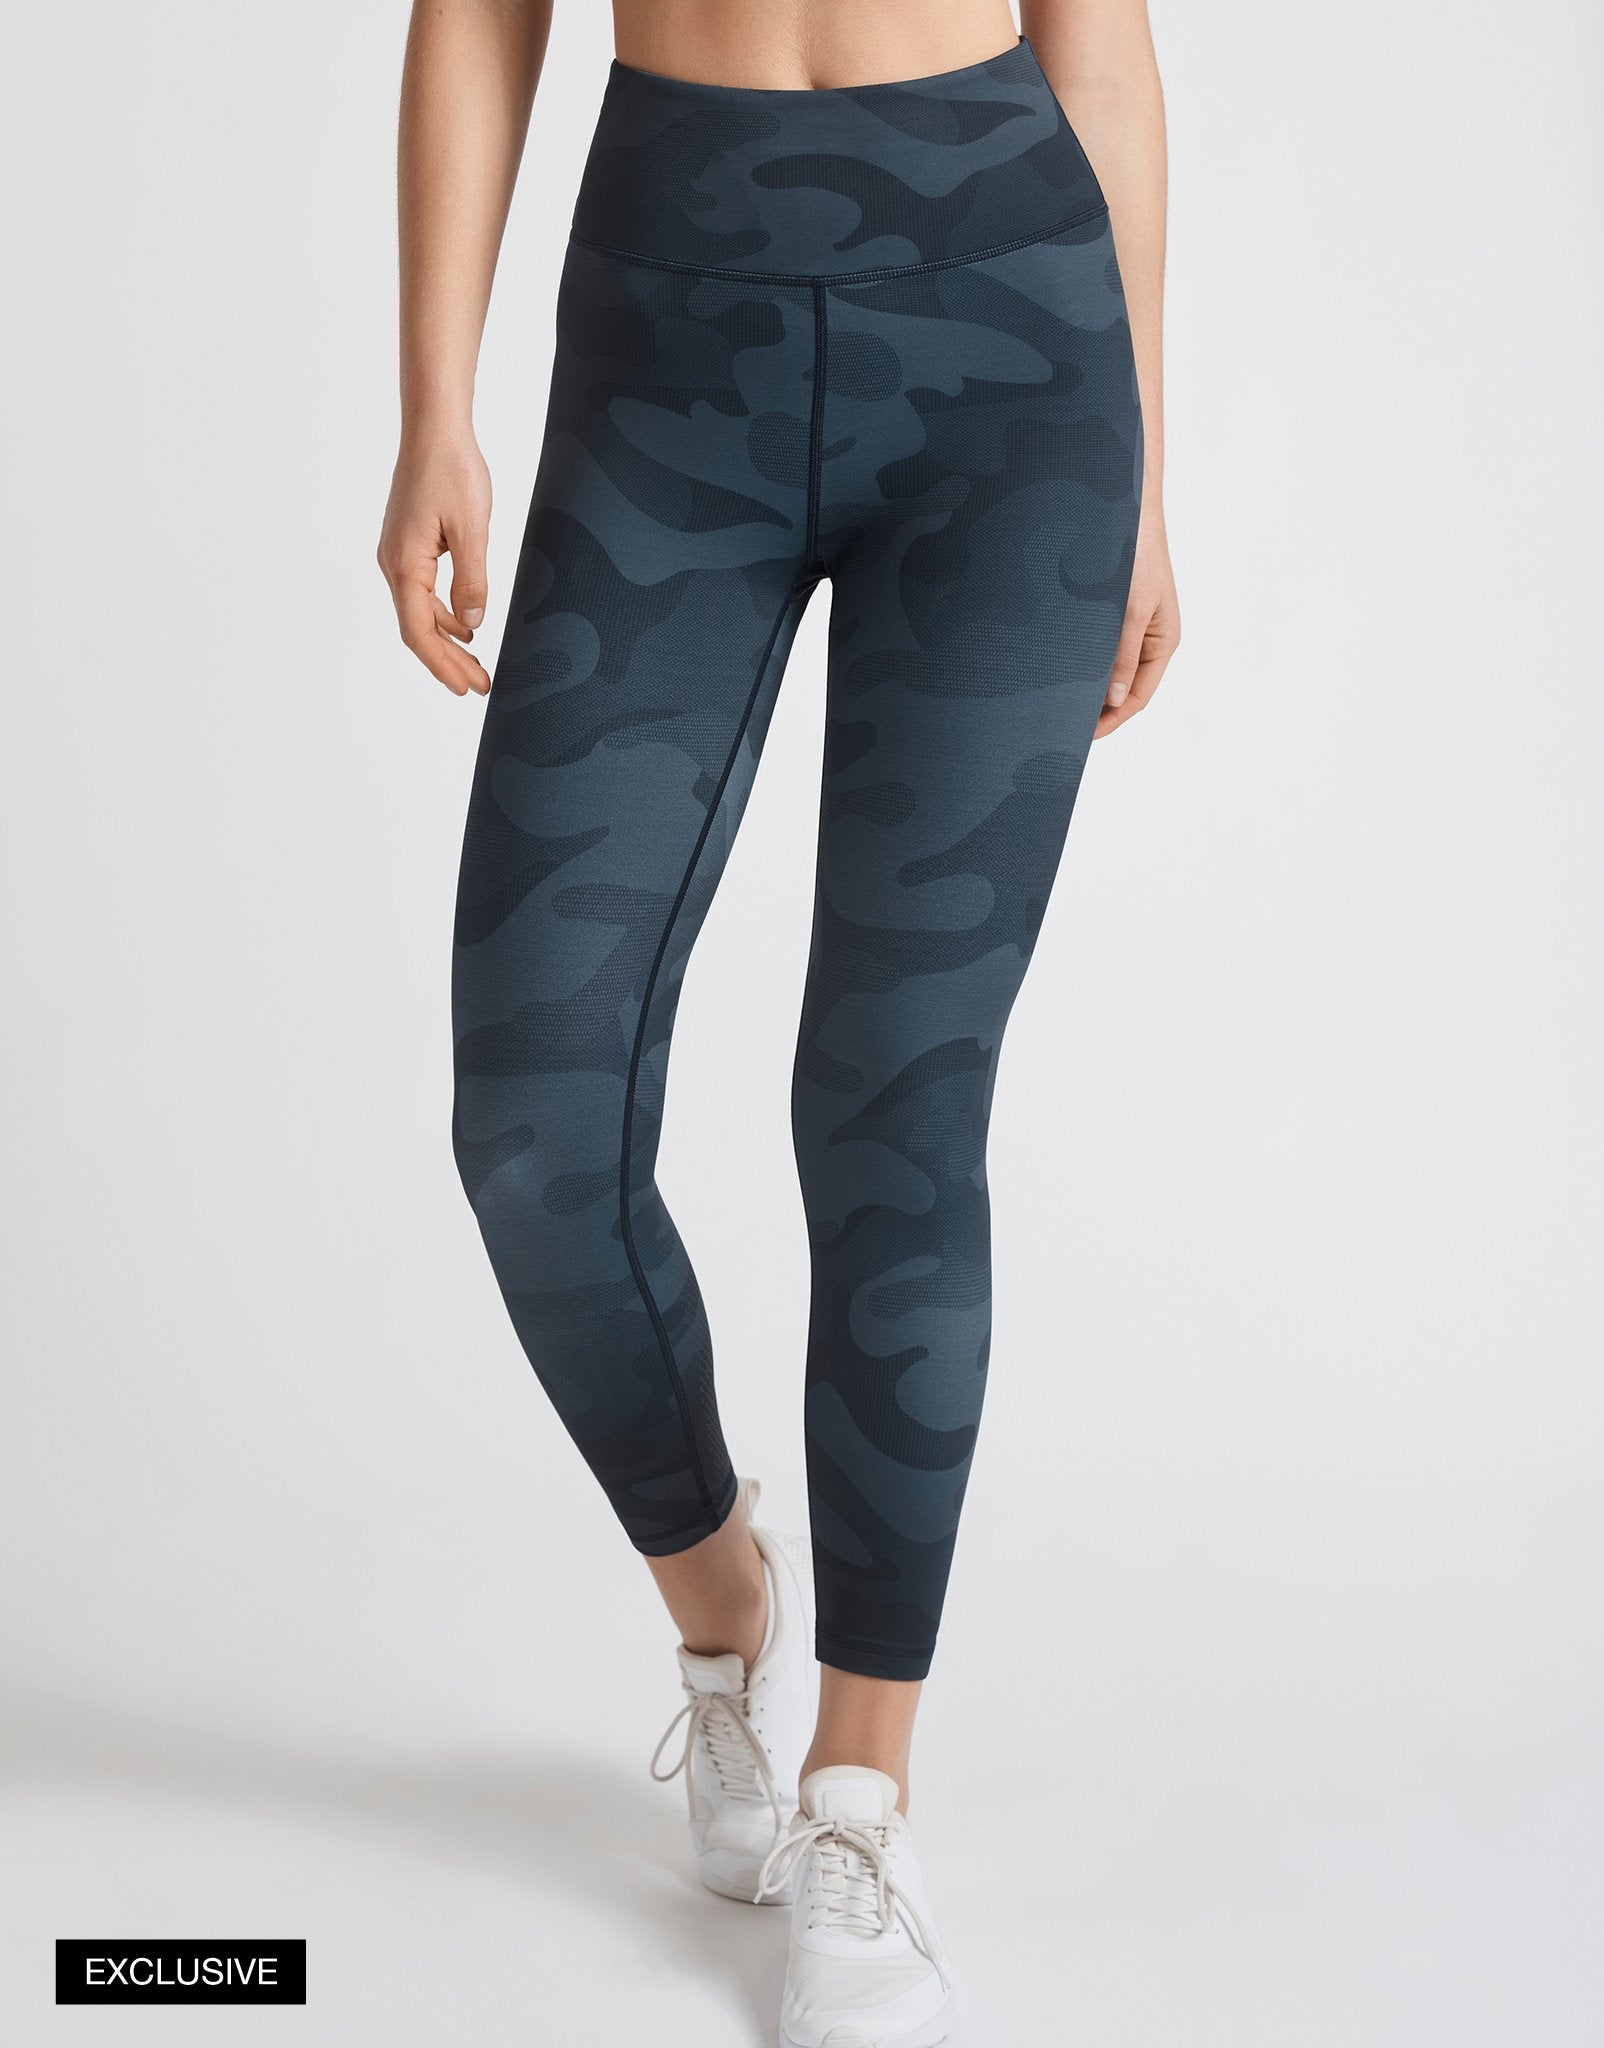 Lilybod-Whitley-Blue-Night-Camo-front-x.jpg